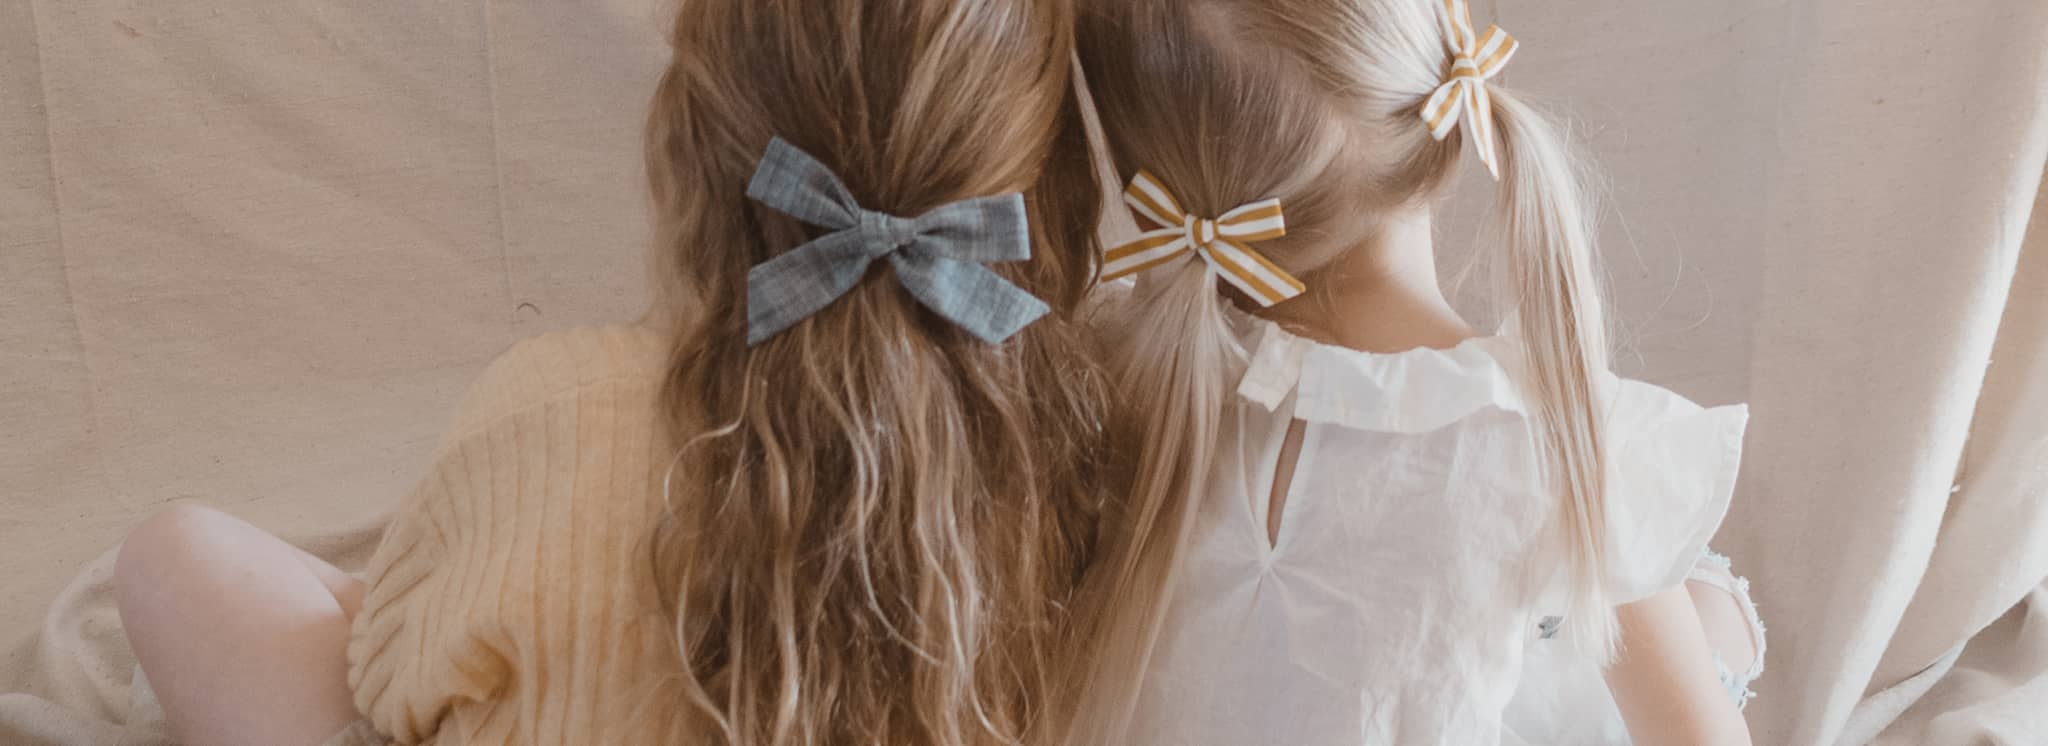 mae and skye co handmade hair bows for babies and girls